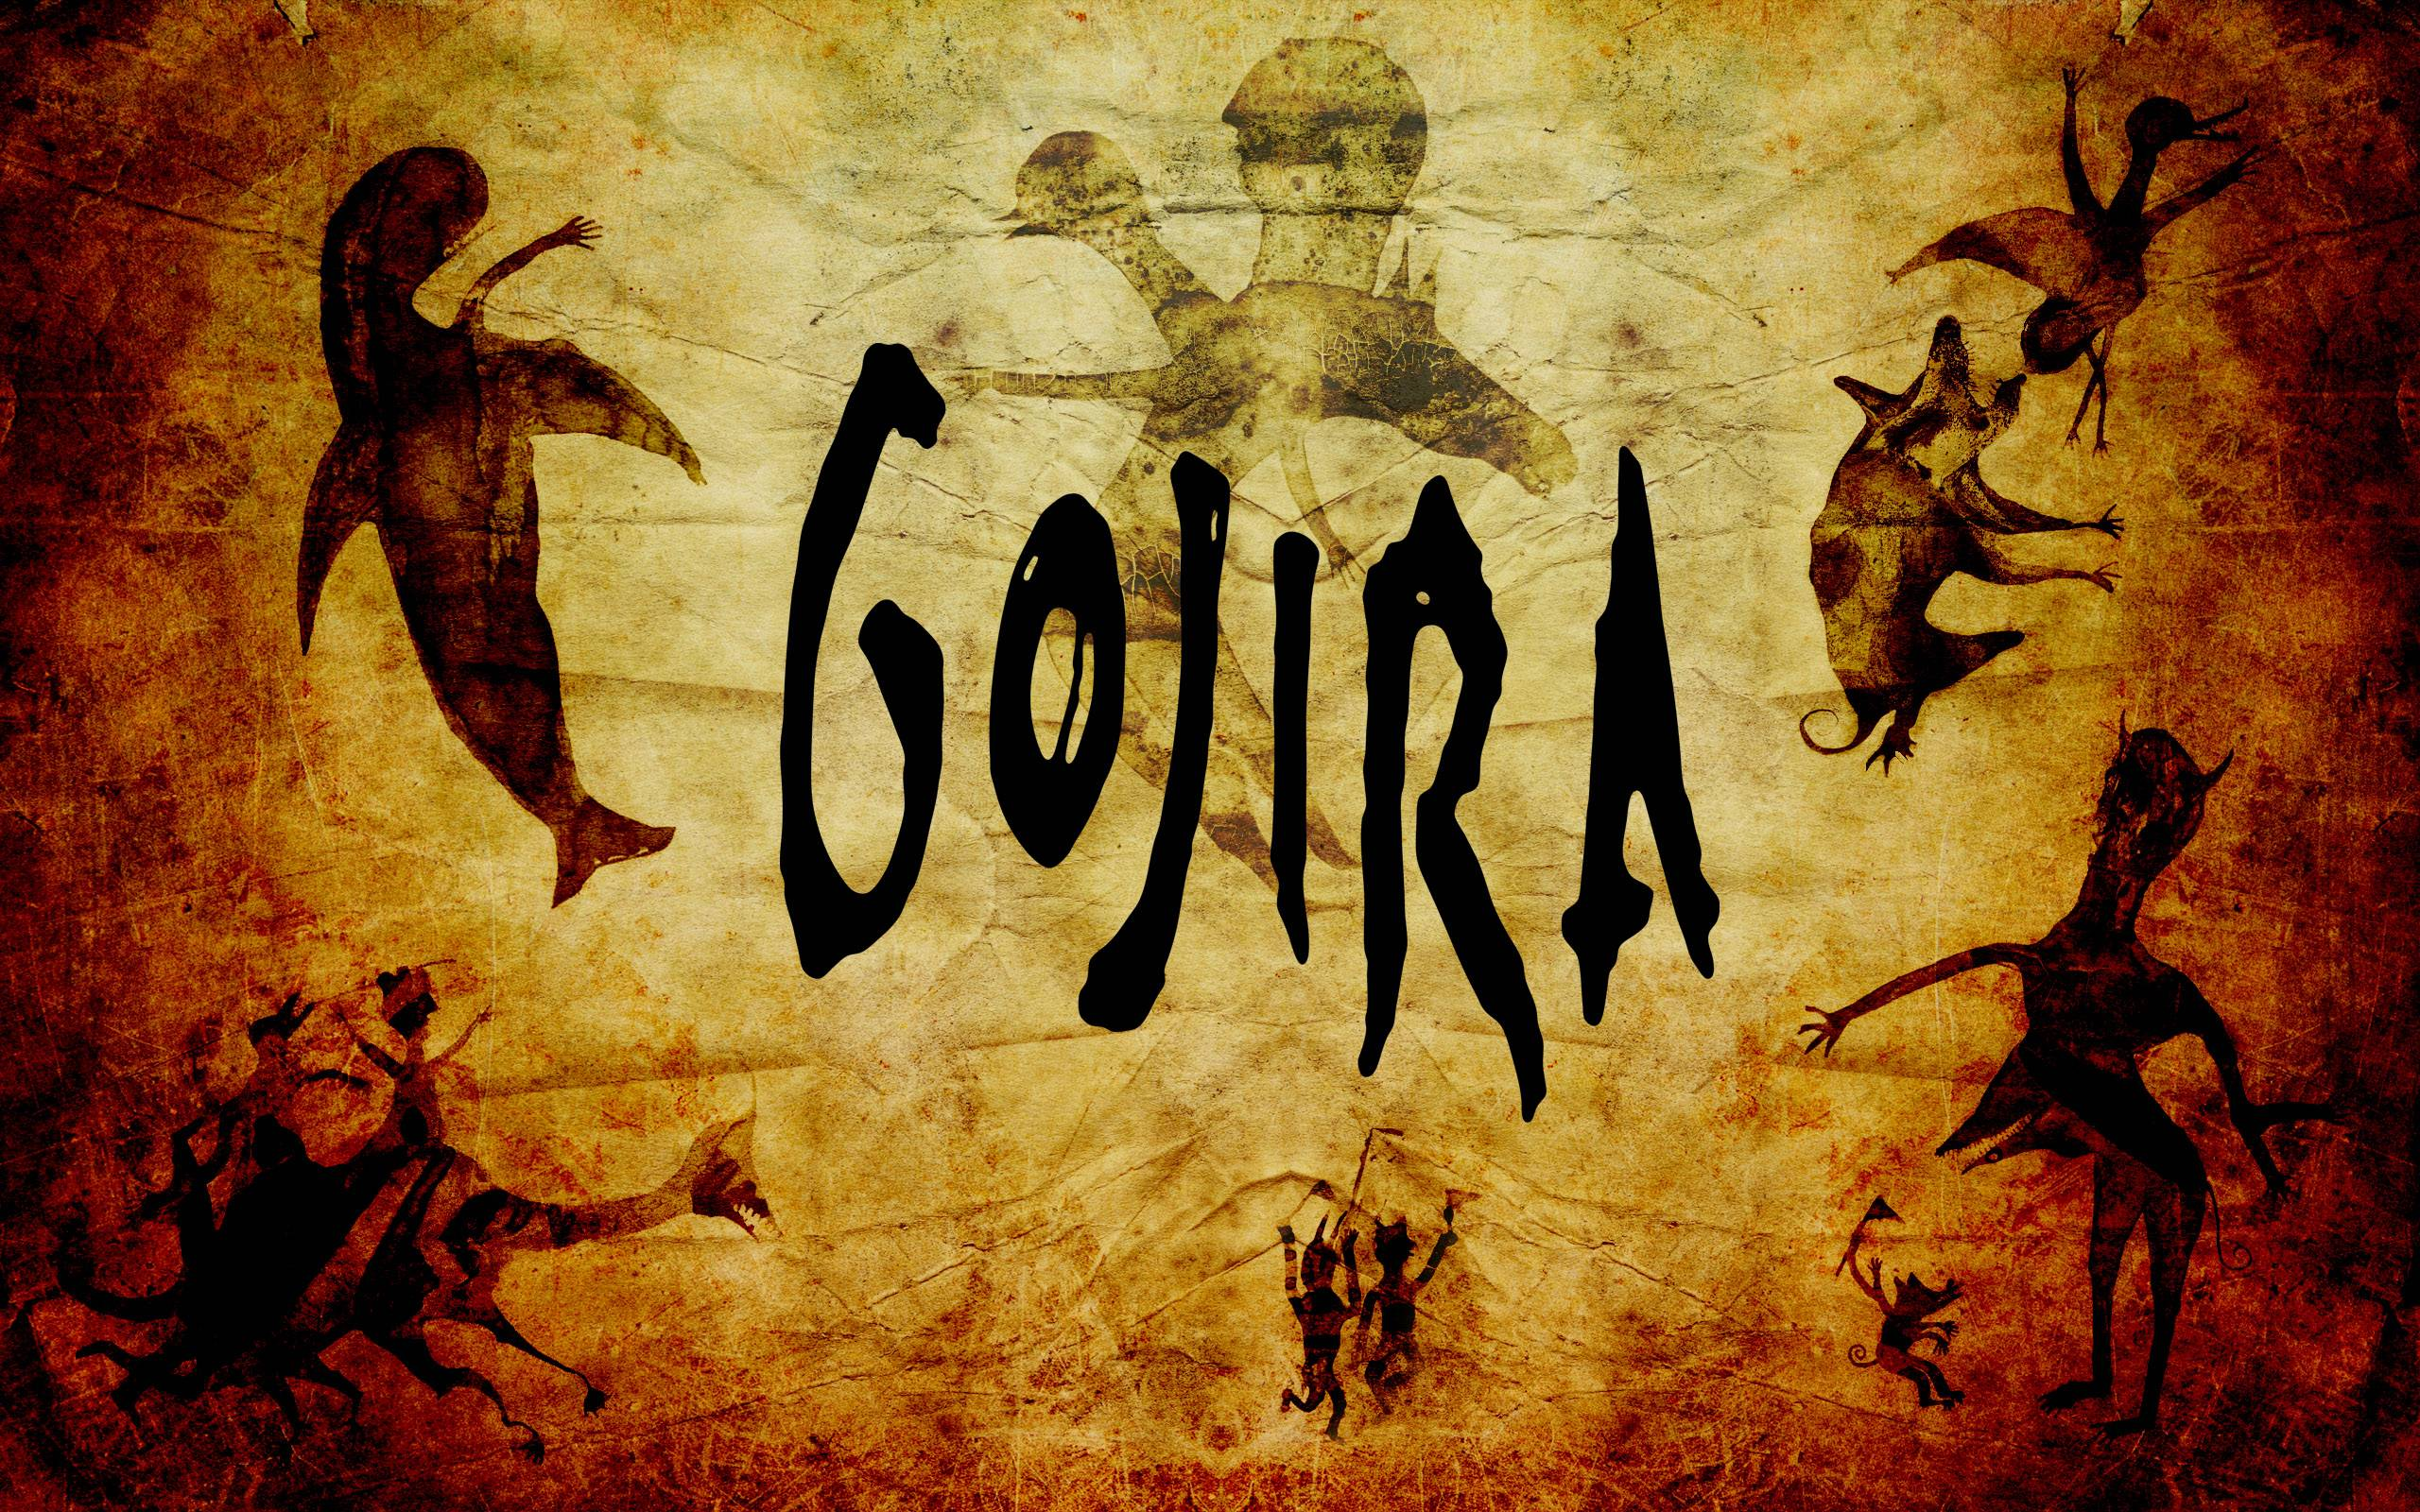 Gojira wallpapers wallpaper cave - Gojira band wallpaper ...